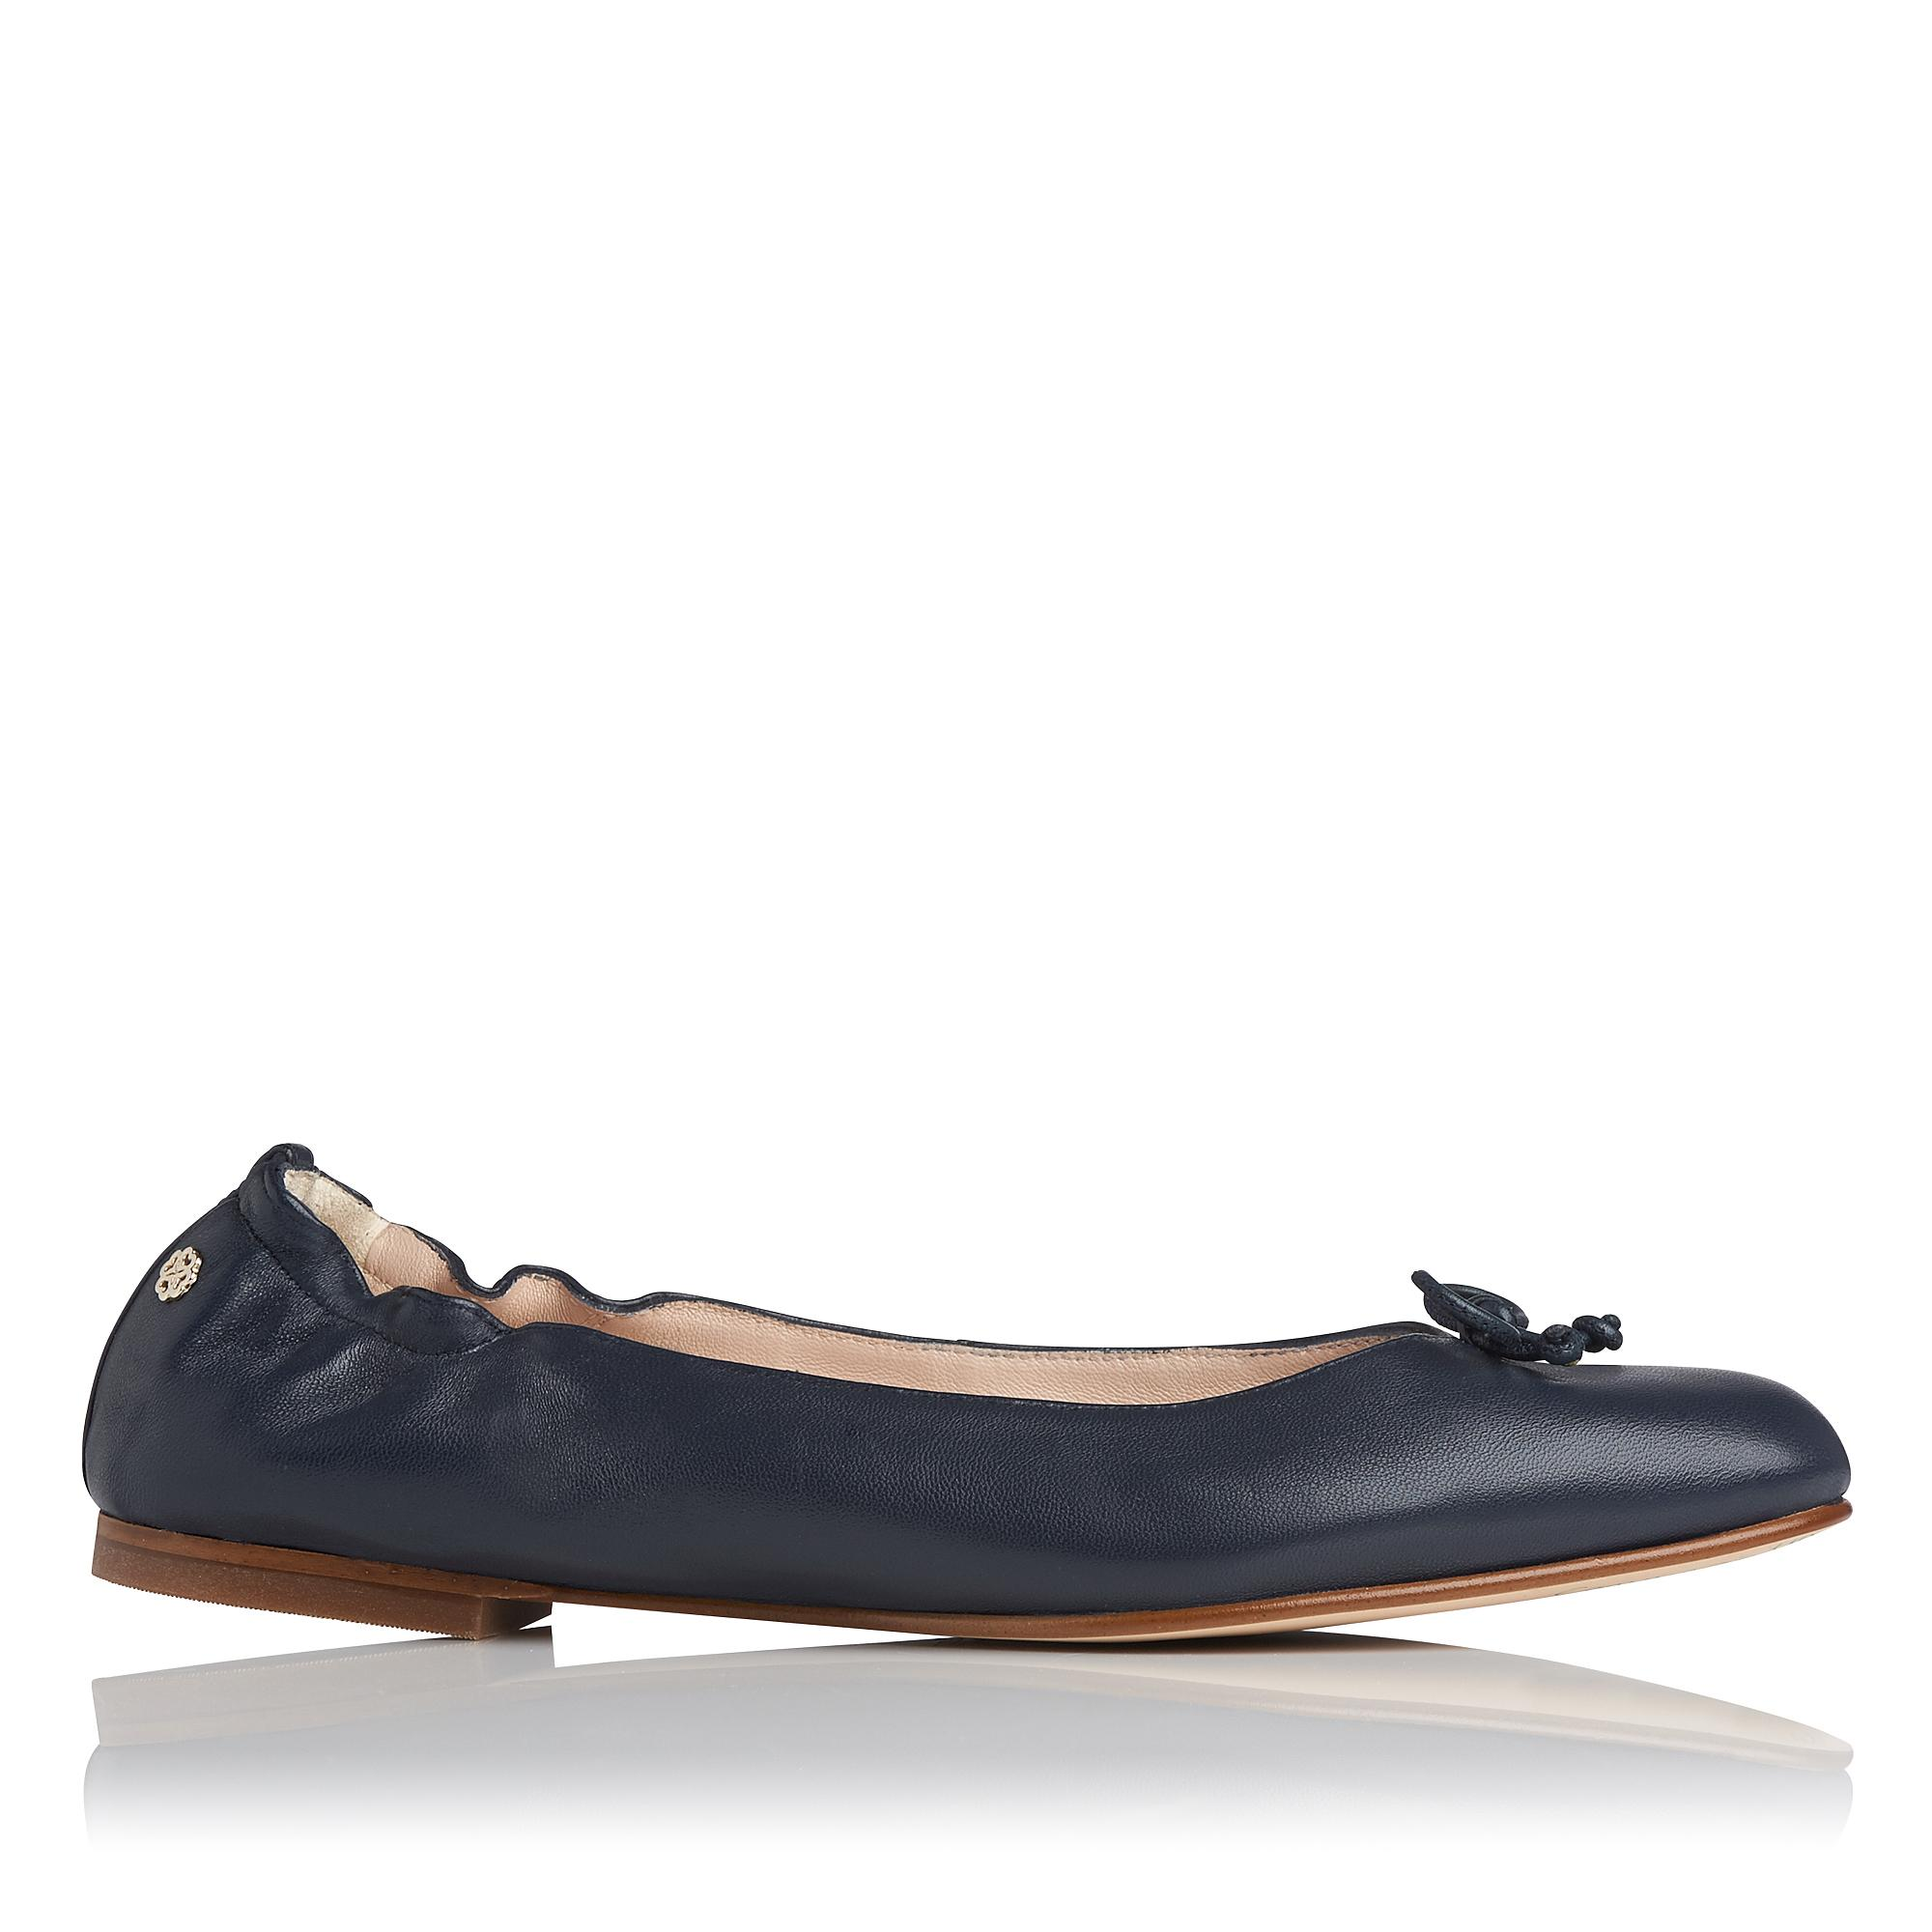 Thea Navy Leather Flats